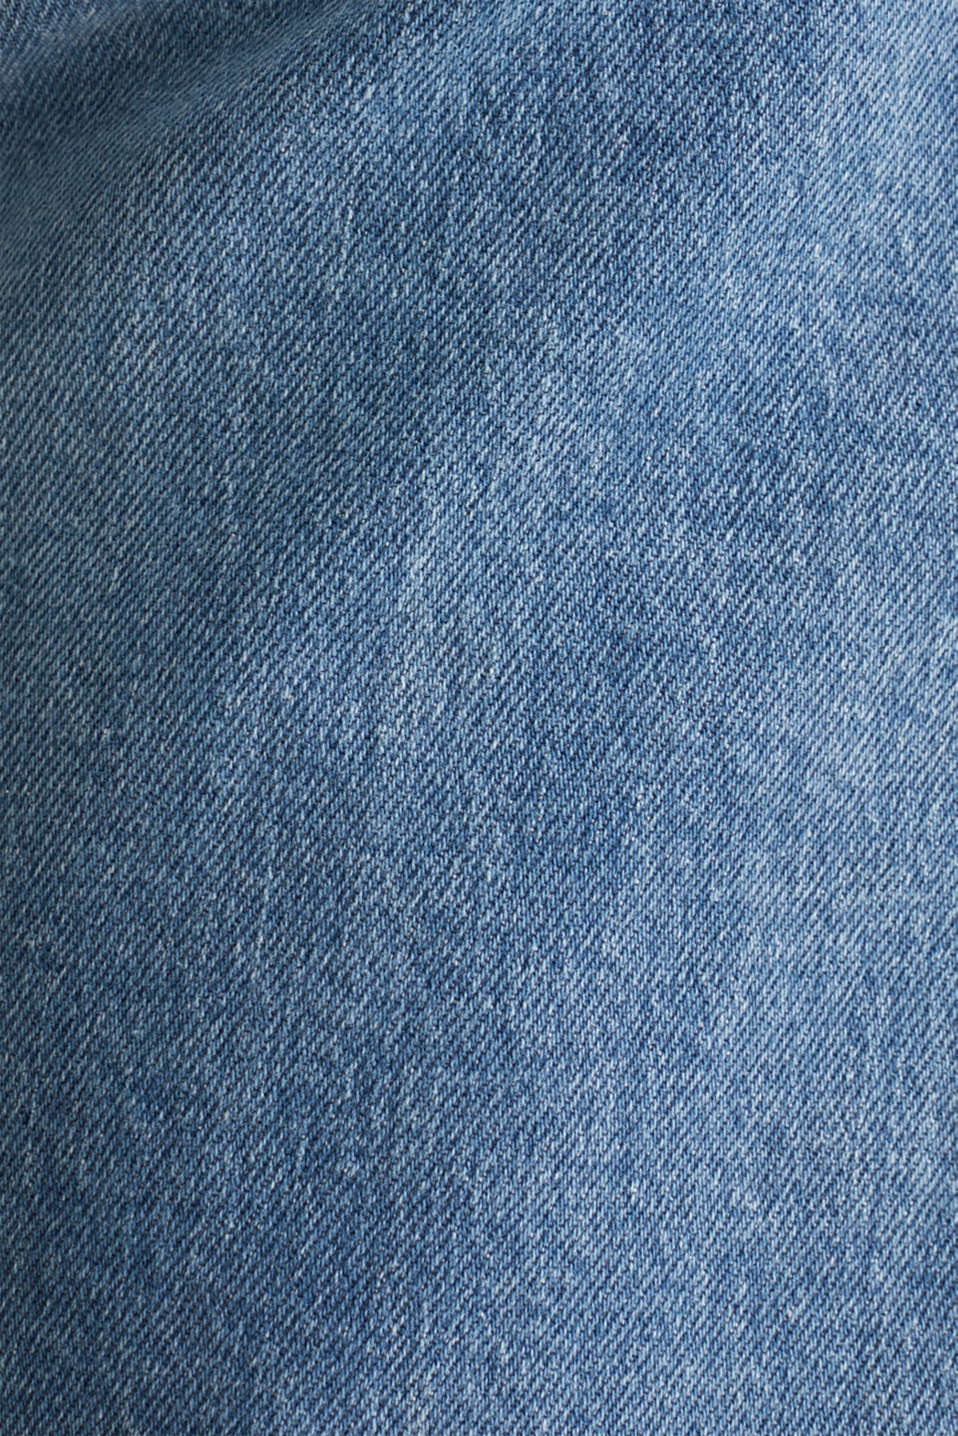 Stretch jeans with washed-out effects, BLUE LIGHT WASH, detail image number 4